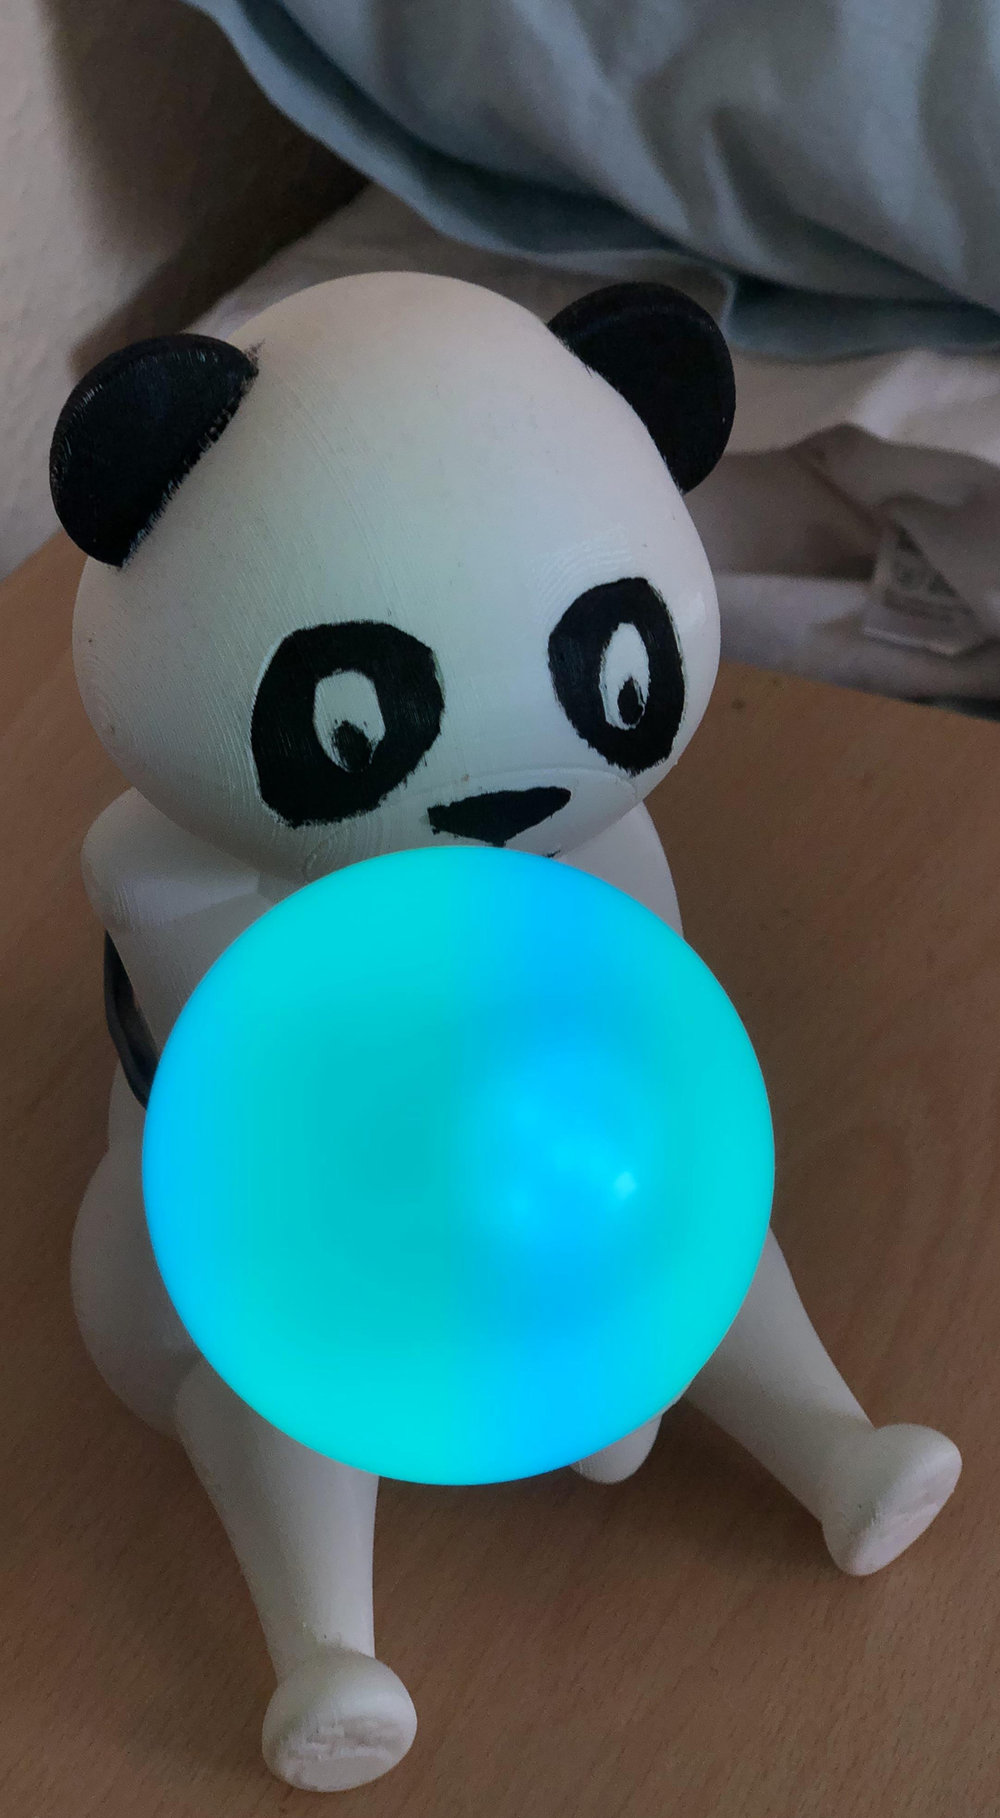 White-Thomas_Panda-Mood-Light-by-Lekki_1.jpg